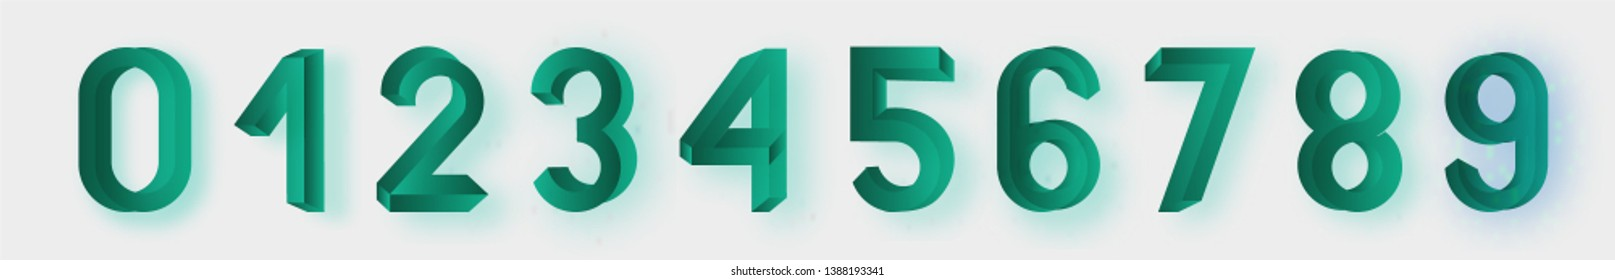 Impossible shape font. Memphis style numbers. Colored letters in the style of the 80s. Set of vector numbers constructed on the basis of the isometric view. Vector illustration 10 eps.